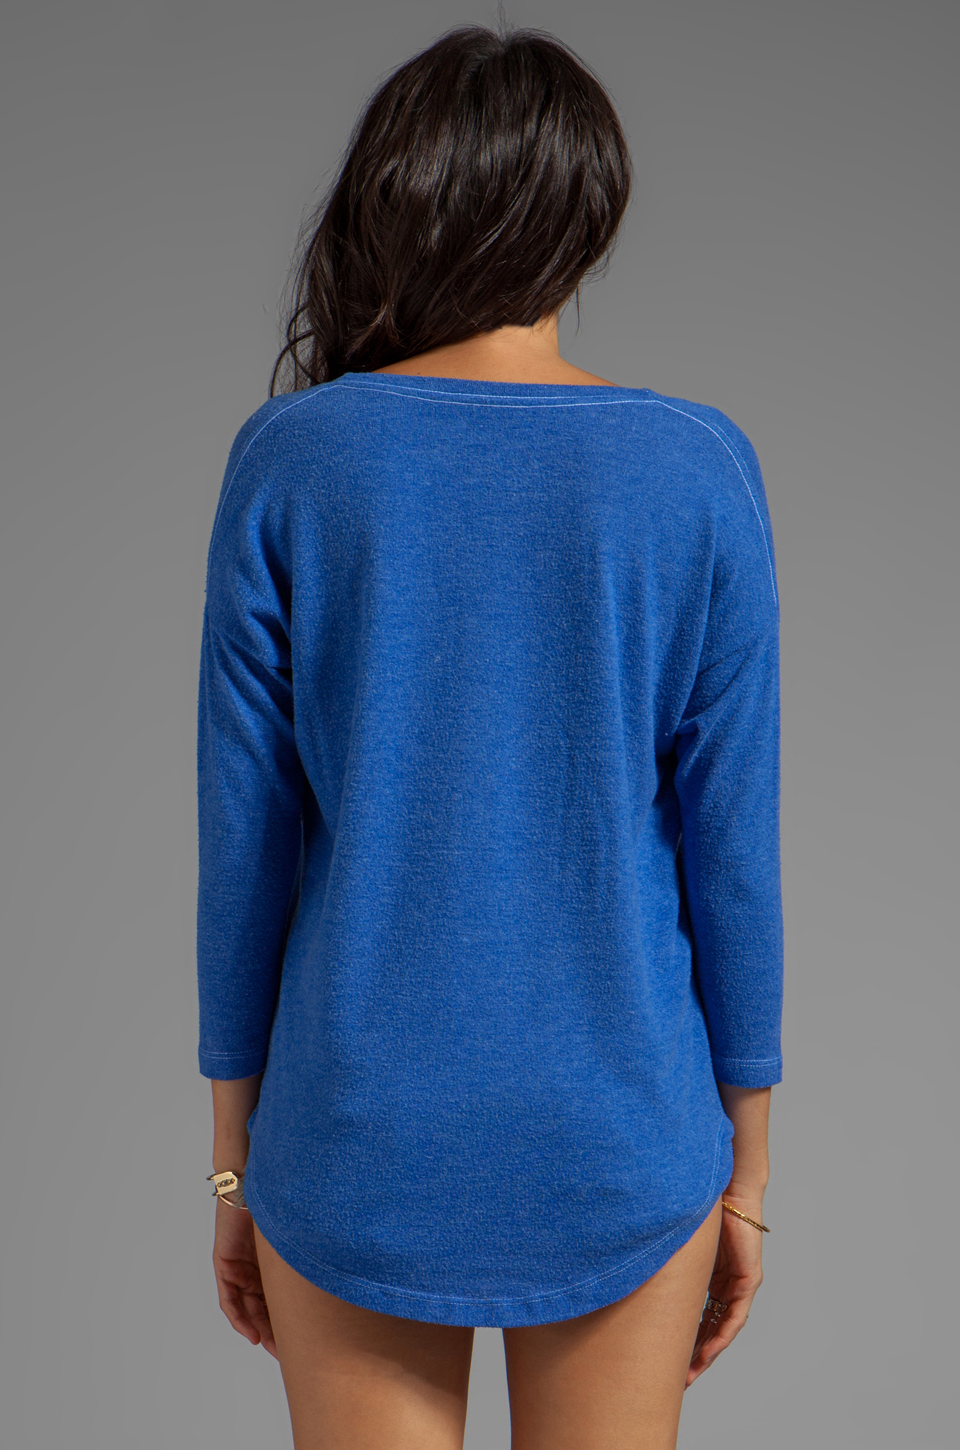 Local Celebrity Hey Babe Pullover in Royal Duran